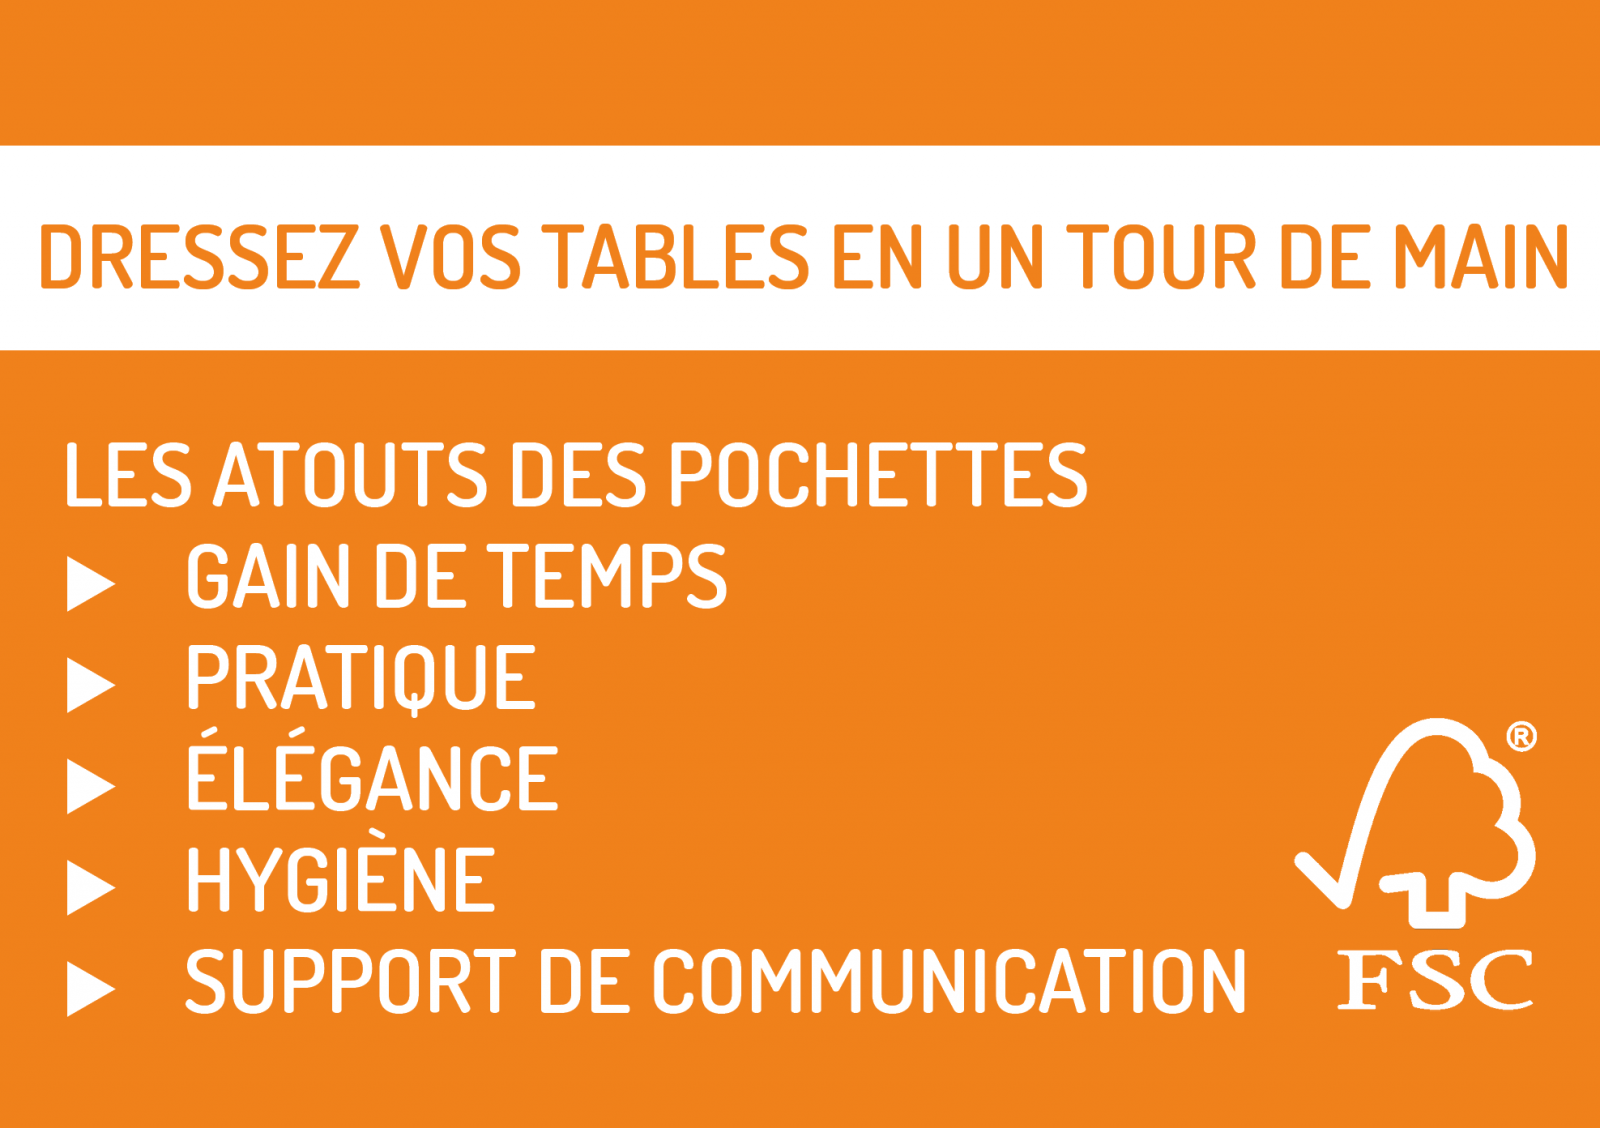 Dressez vos tables en un tour de main